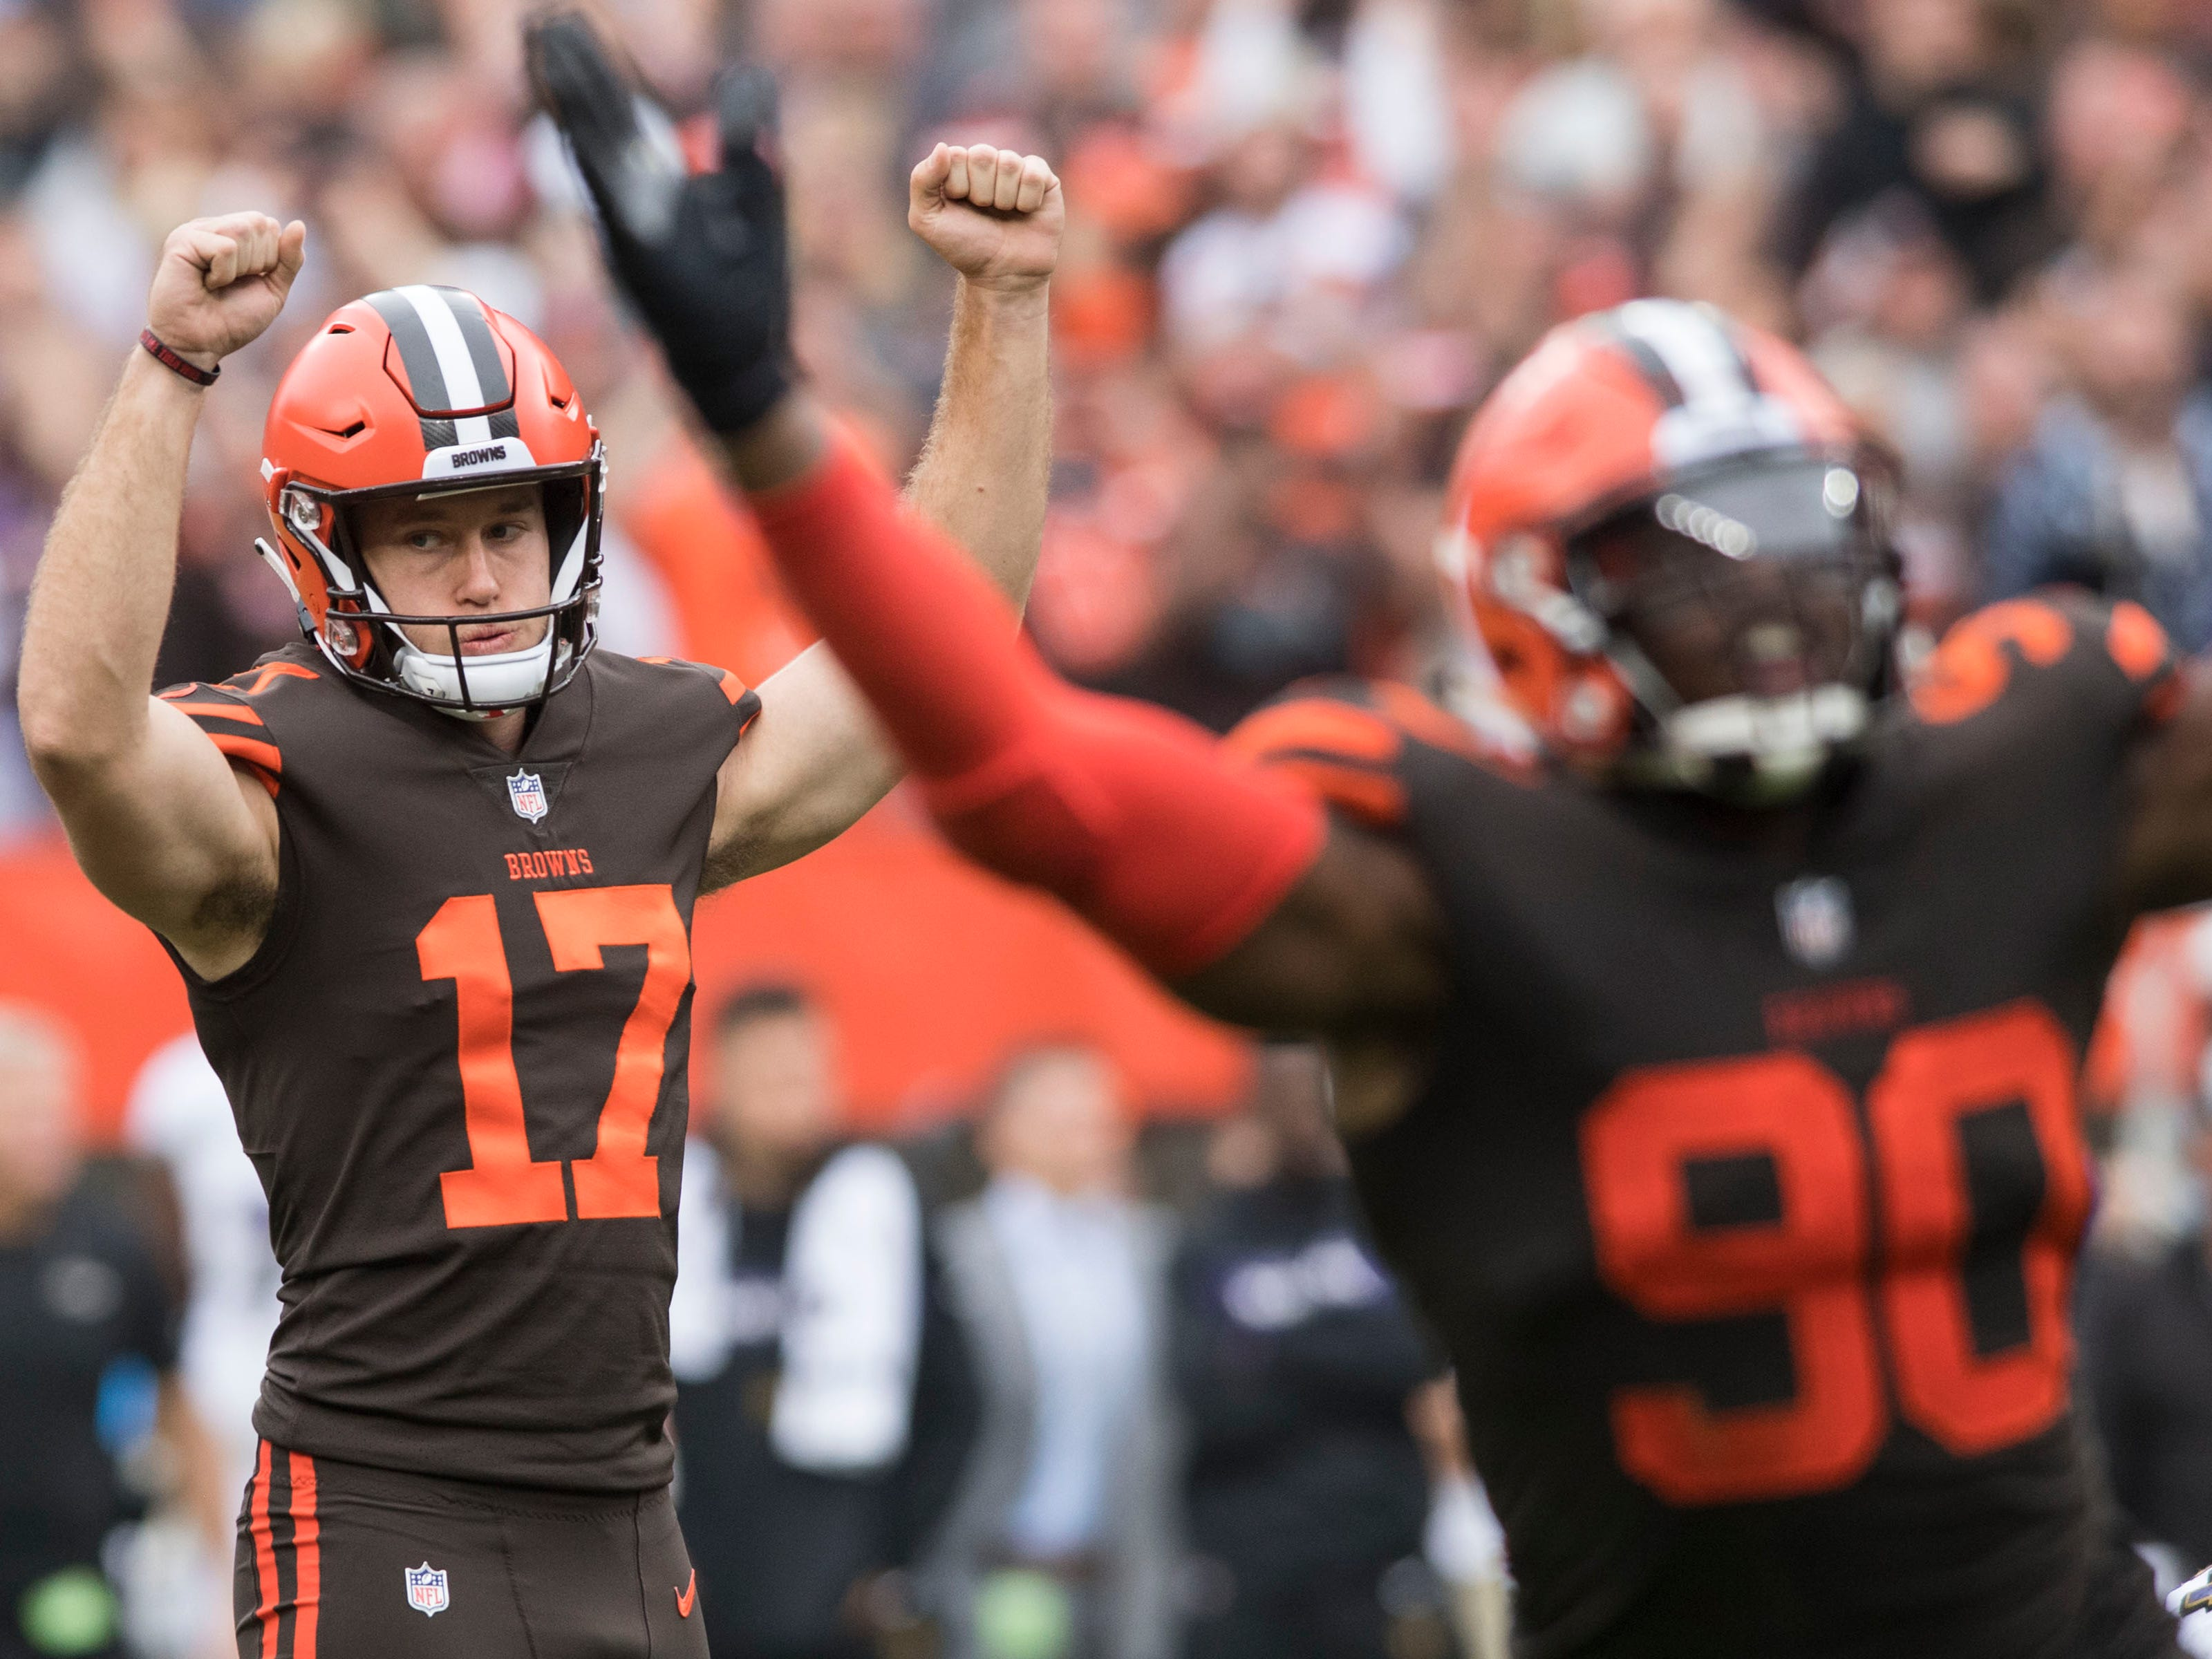 Cleveland Browns kicker Greg Joseph (17) and defensive end Emmanuel Ogbah (90) celebrate after Joseph kicked the game-winning field goal in overtime against the Baltimore Ravens at FirstEnergy Stadium.